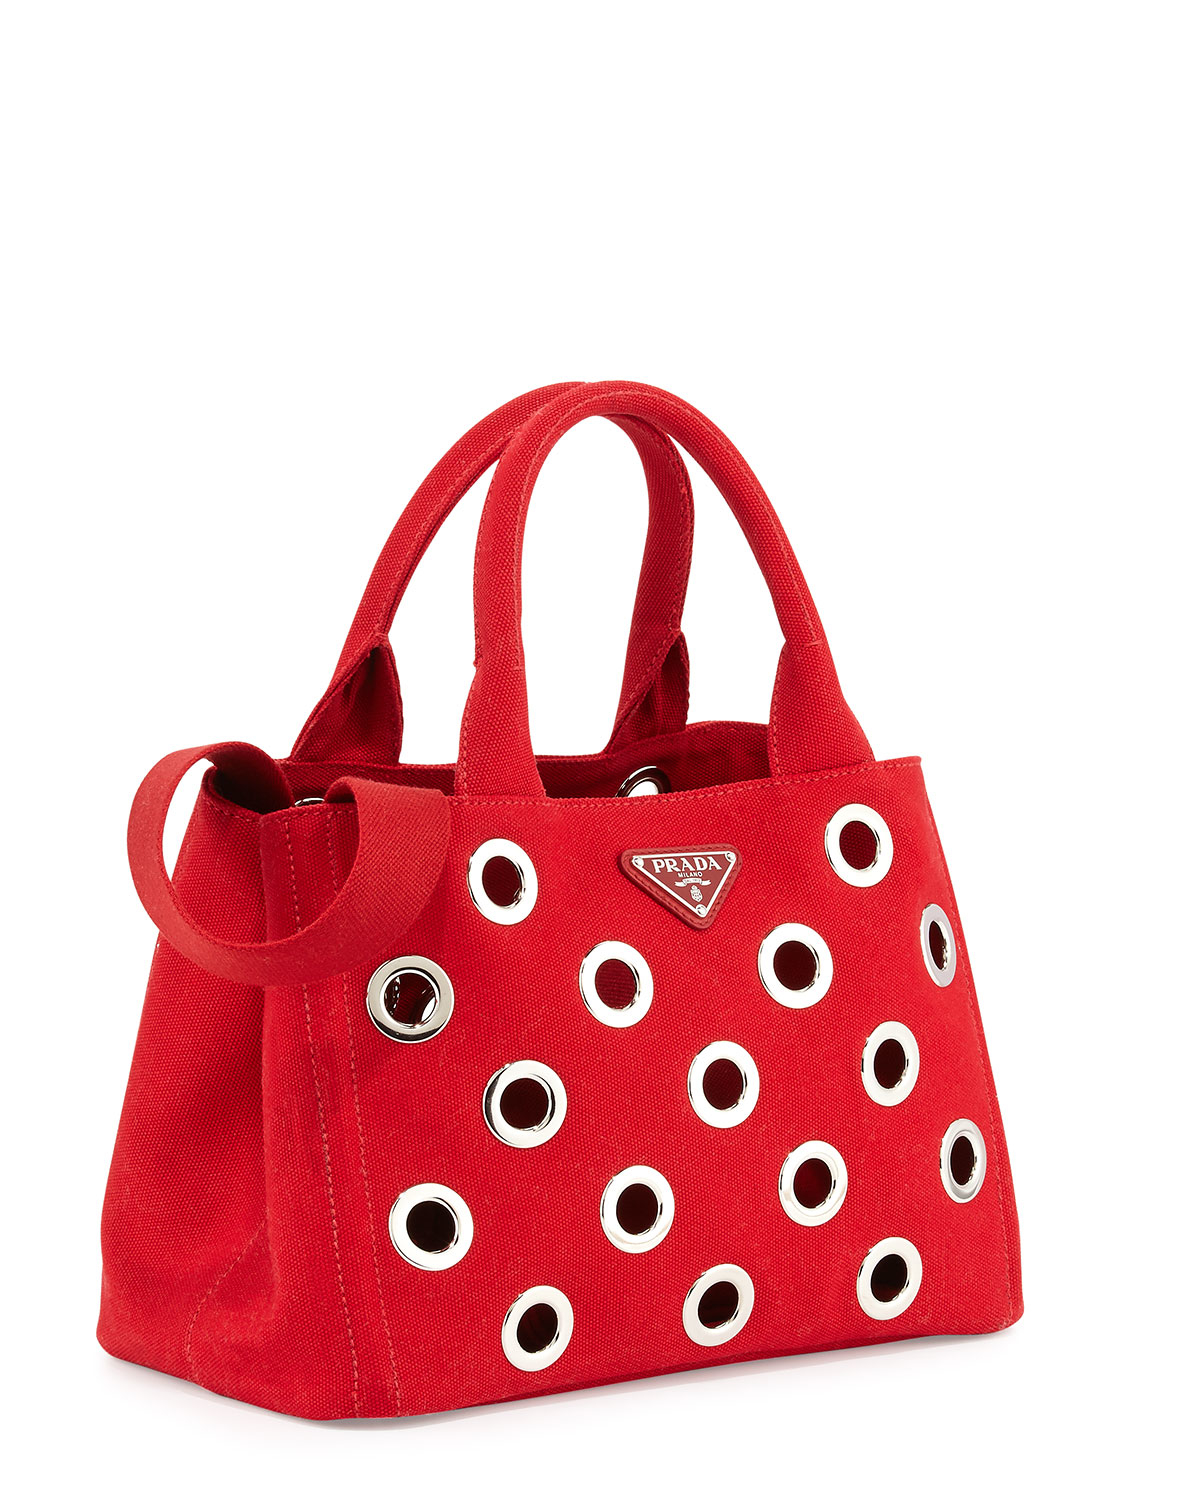 a2dd24017f49 Lyst - Prada Canapa Grommet Small Garden Tote Bag in Red